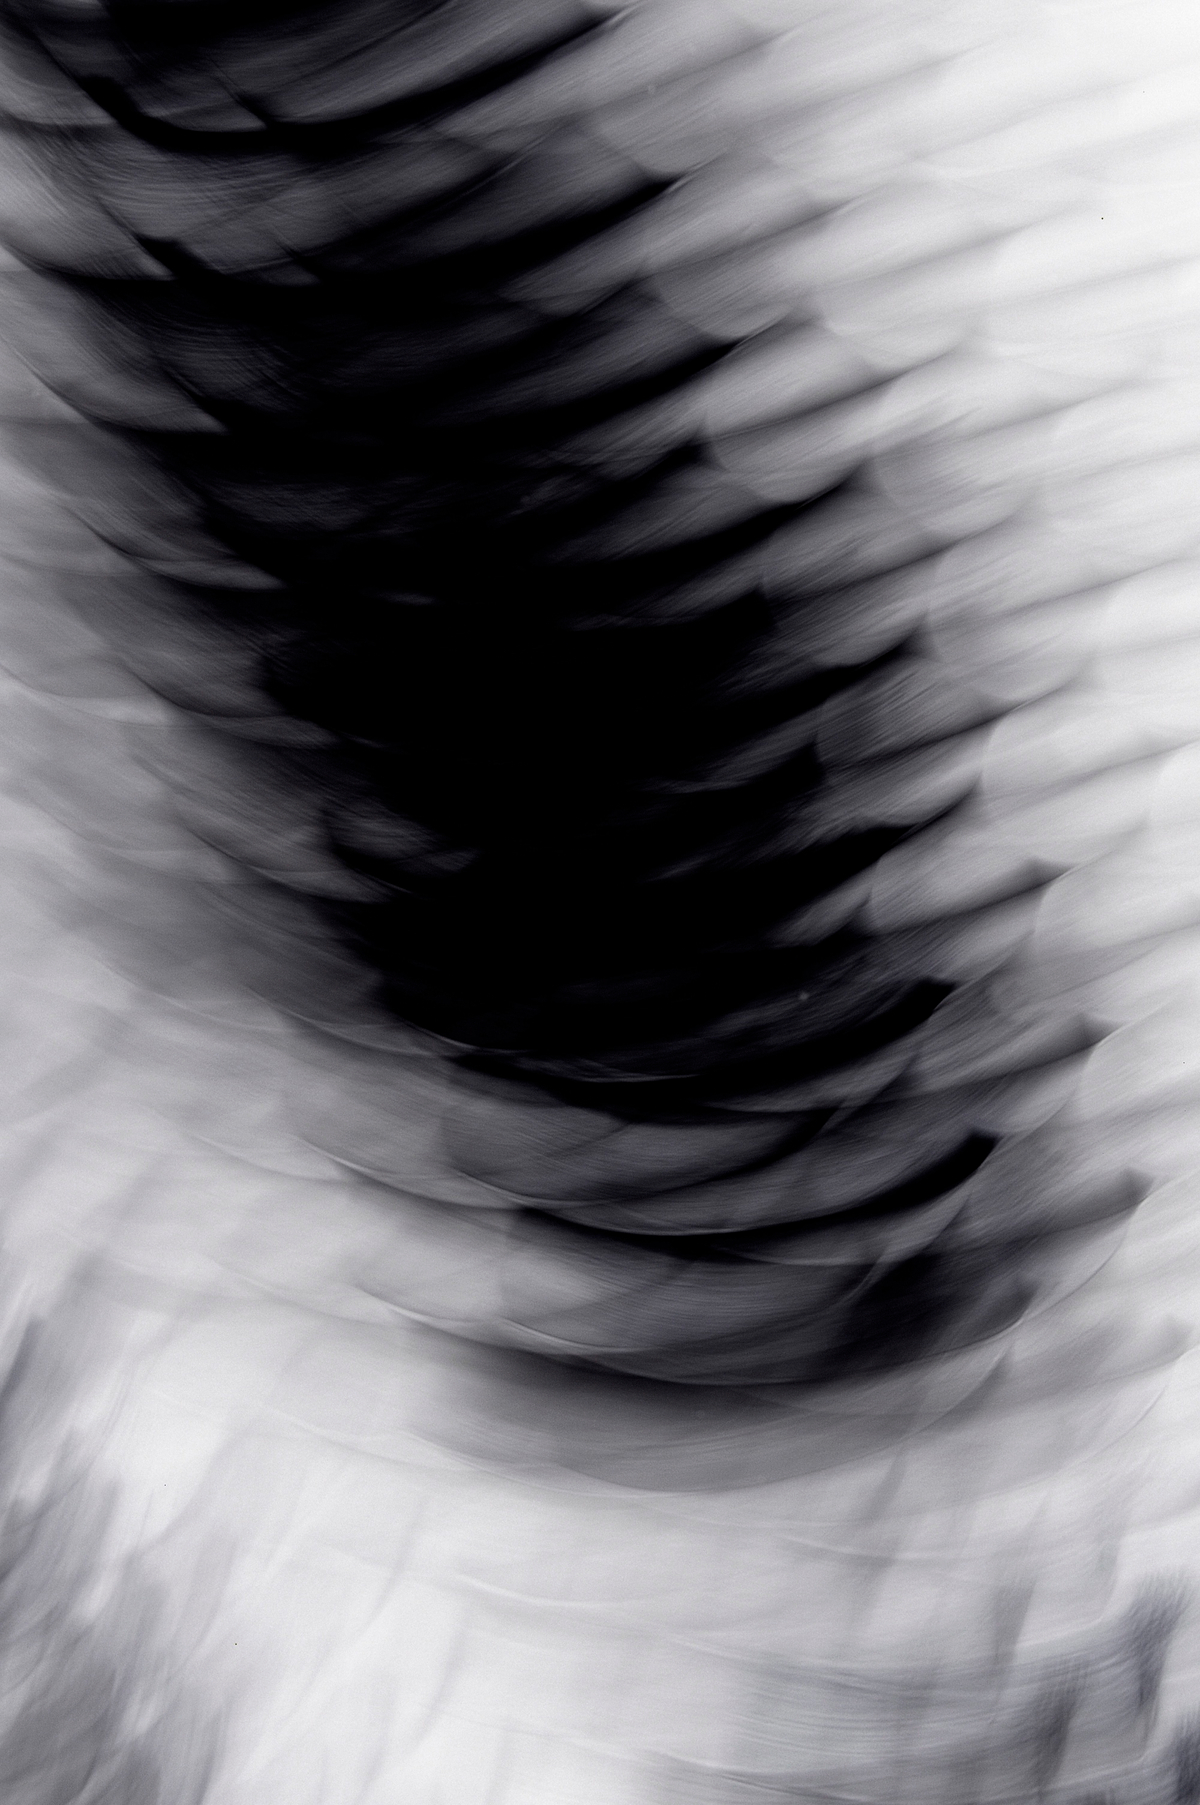 Fundidora, 2007, Black and White Abstract Photography, Shirine Gill